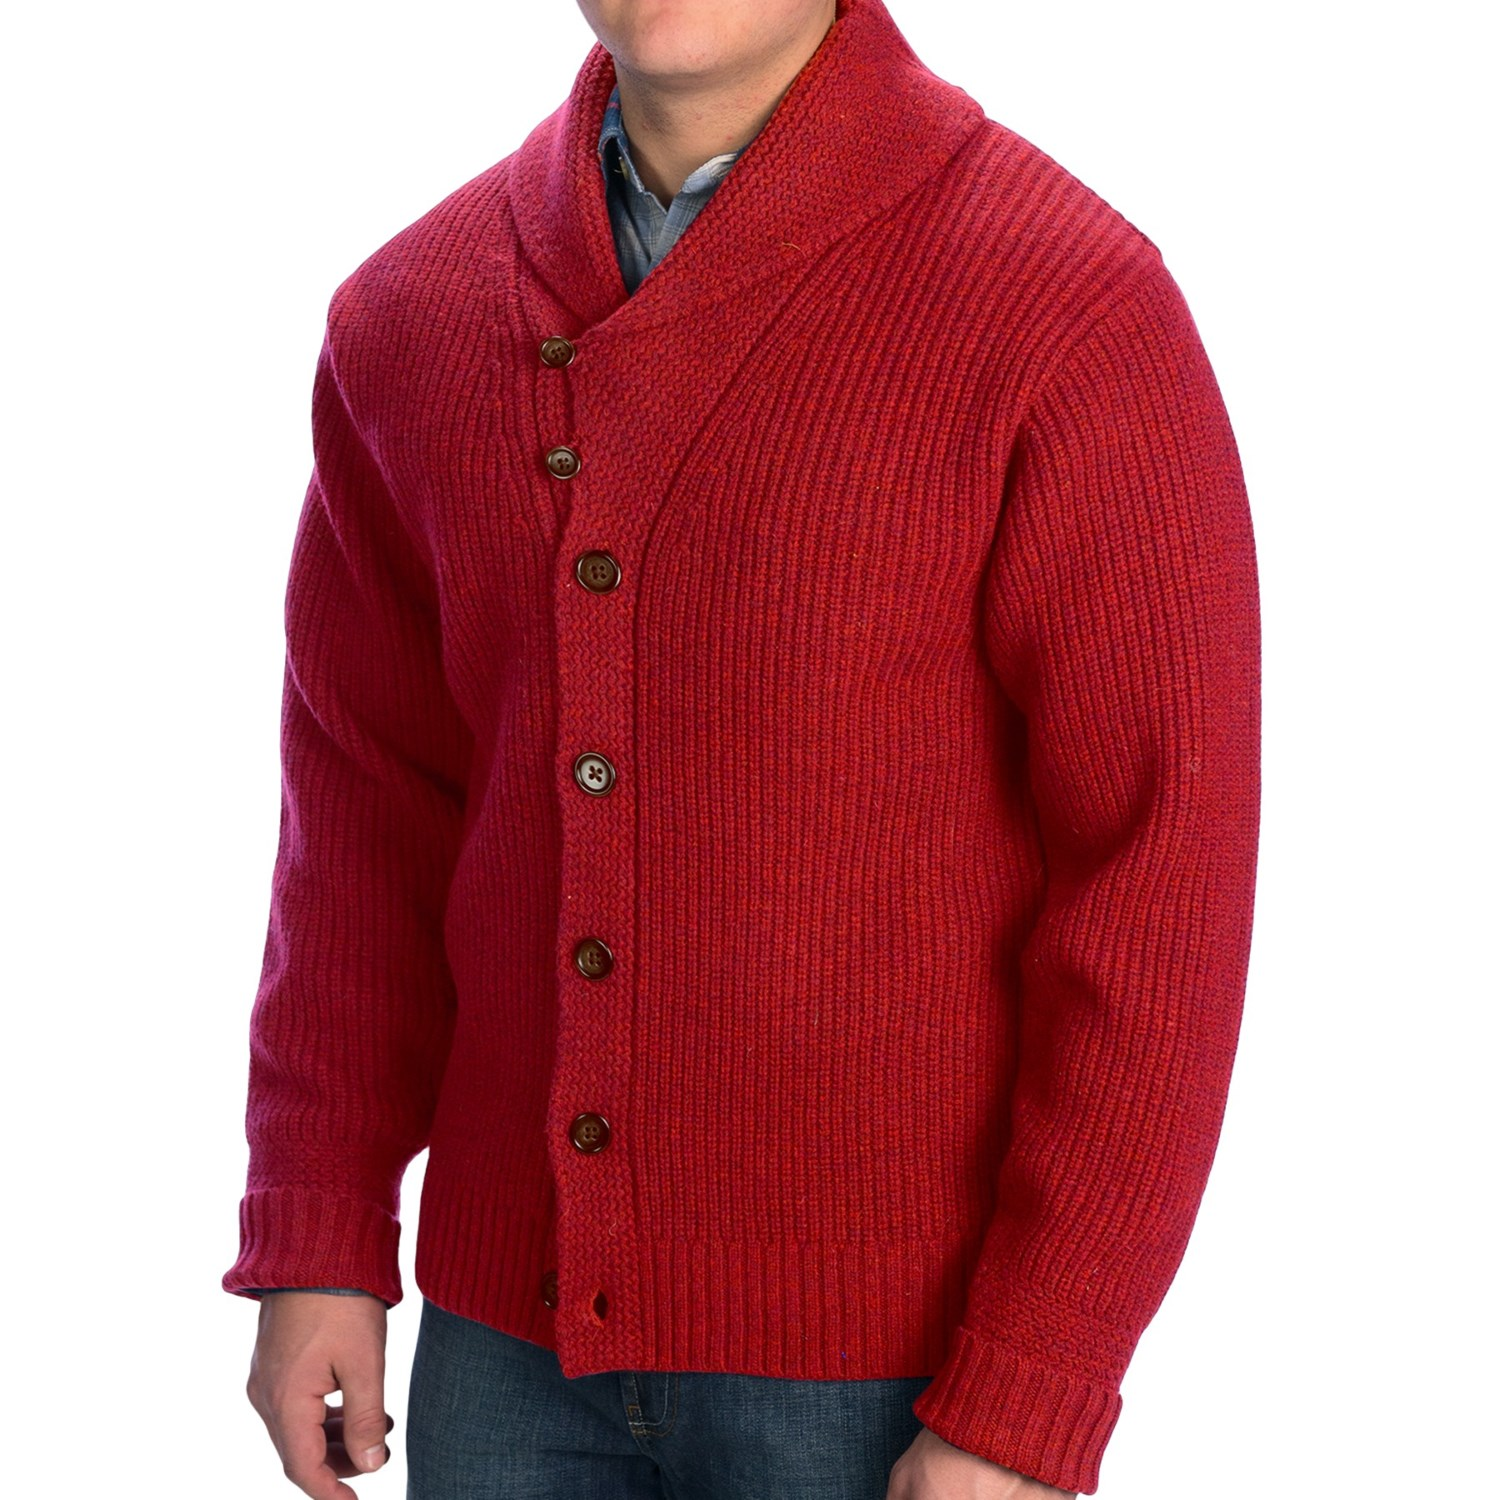 Find the perfect Irish gift for him to keep him warm and snug all winter long with one of our men's Aran shawl collar cardigans or a wool turtleneck sweater. Or give him the classic Irish look with a stylish fisherman sweater.